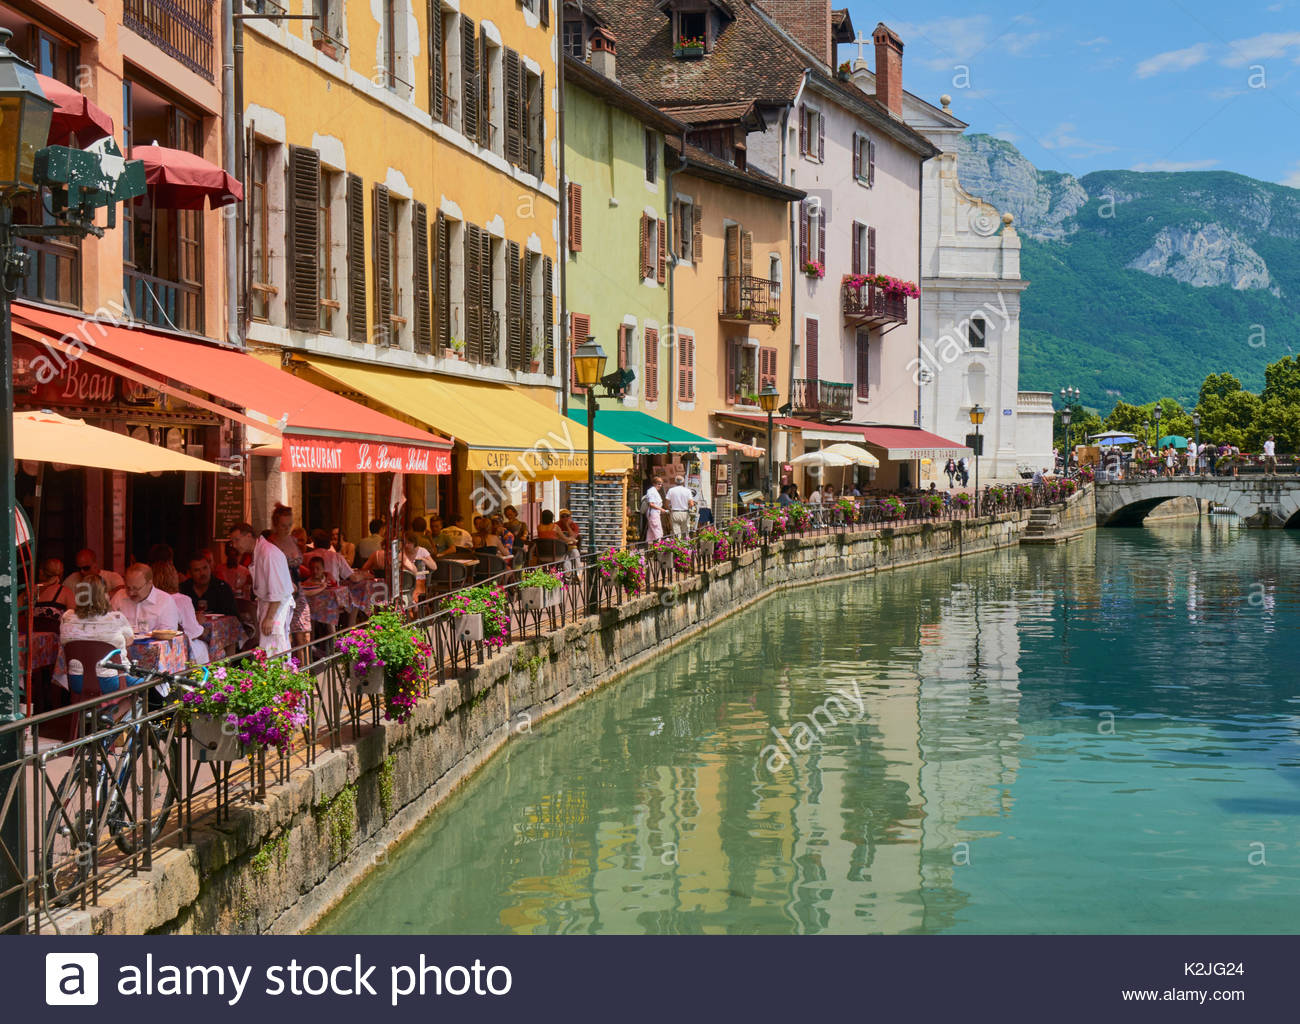 cafe bars bistros and restaurants on the waterfront canal du thiou annecy france - Stock Image